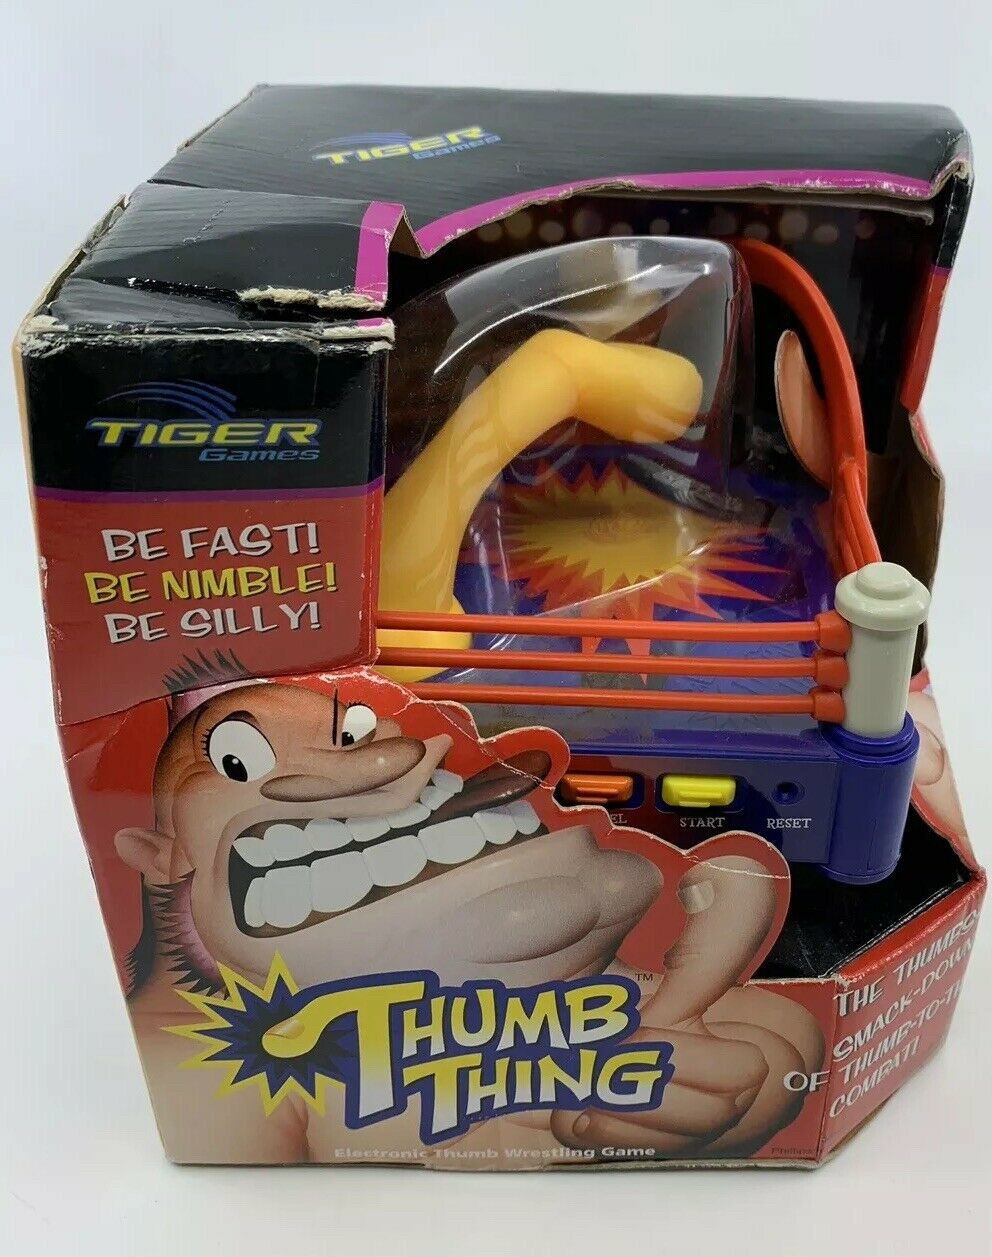 NEW 2003 Tiger Thumb Thing - Electronic Thumb Wrestling Game - Factory Sealed